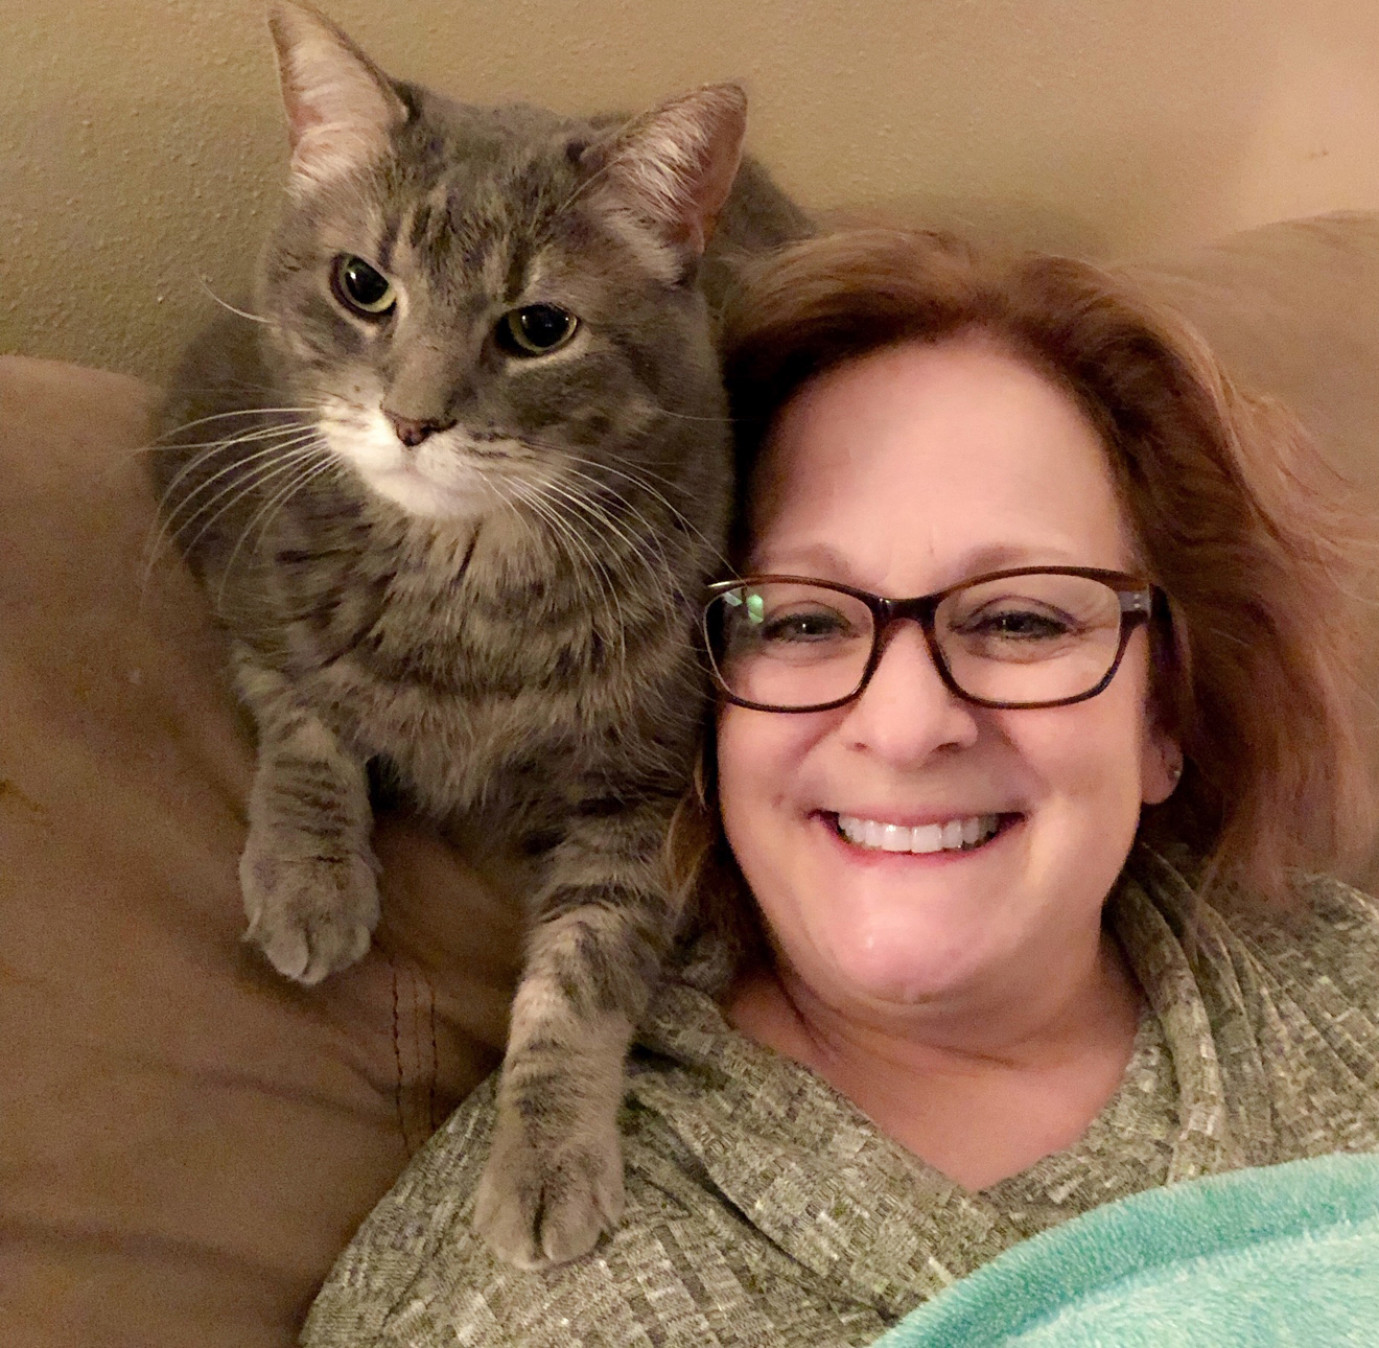 Meet Carol Fisher, Product Manager and Cat Lady